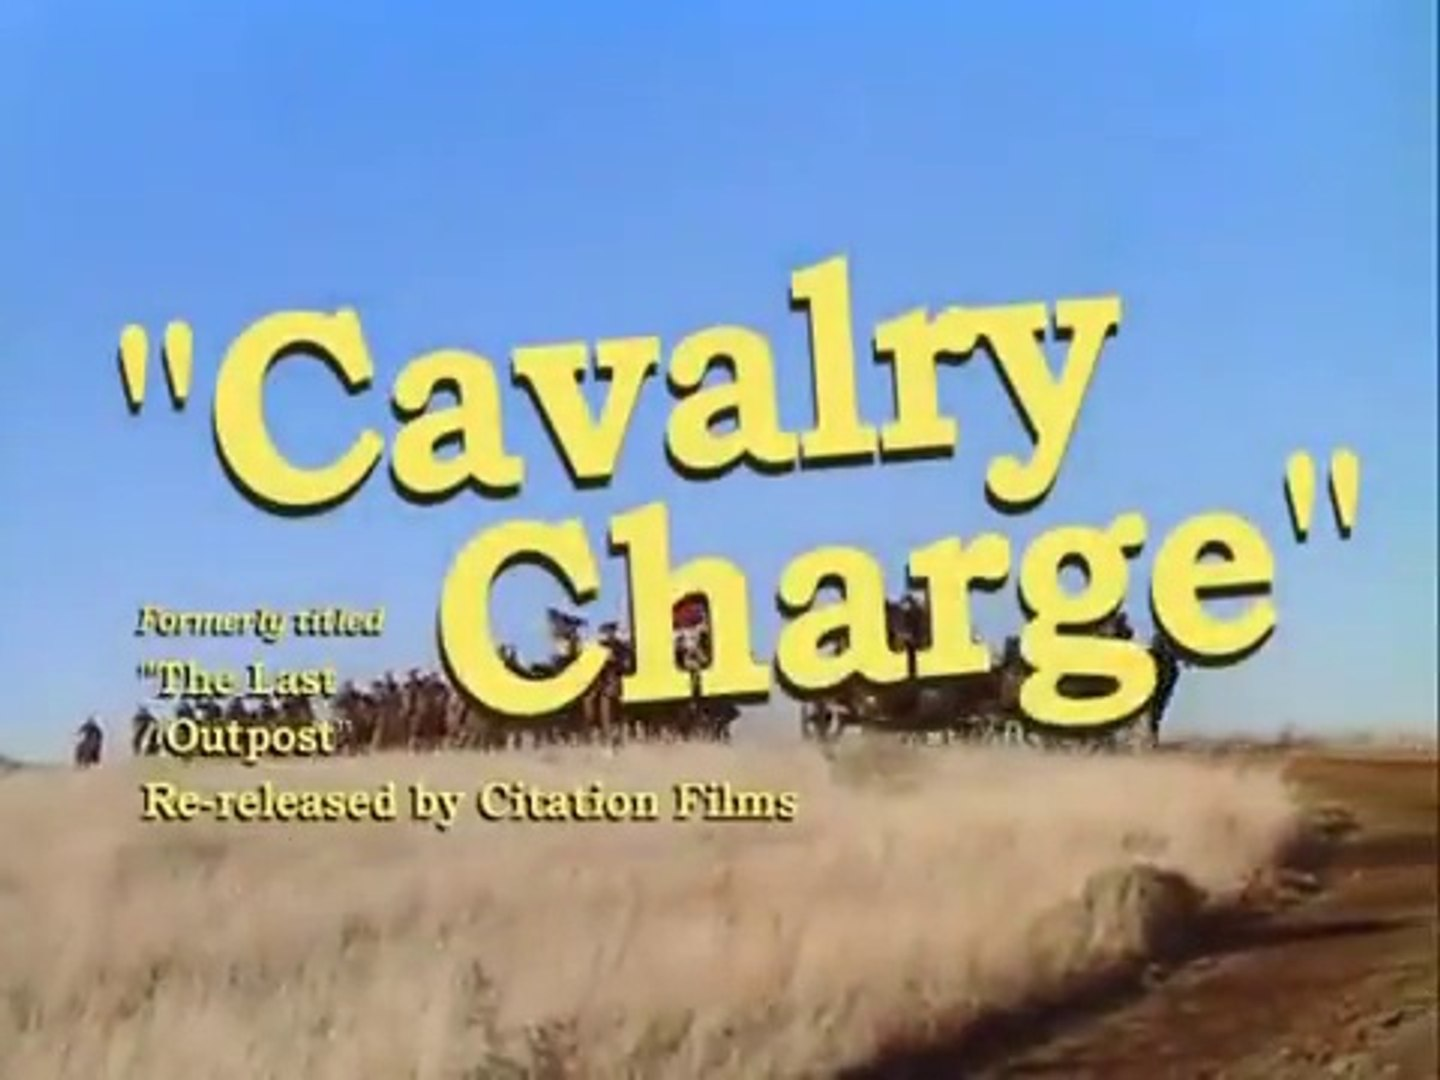 1951 - Cavalry Charge, aka The Last Outpost - Ronald Reagan ...